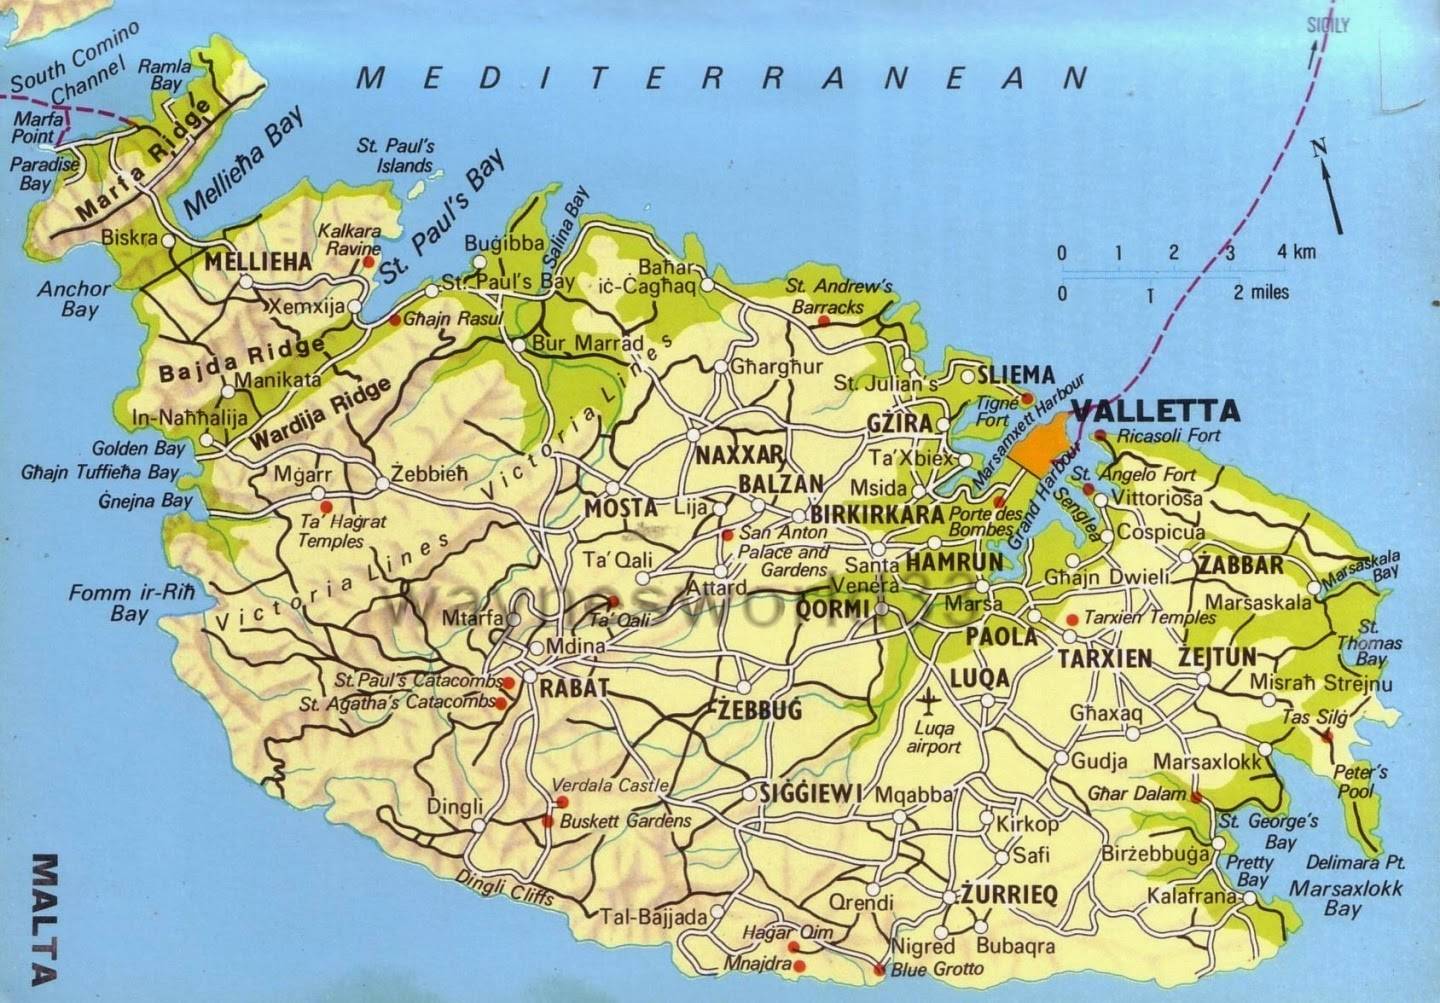 Map of Malta 10 Most Beautiful Island Countries in the World